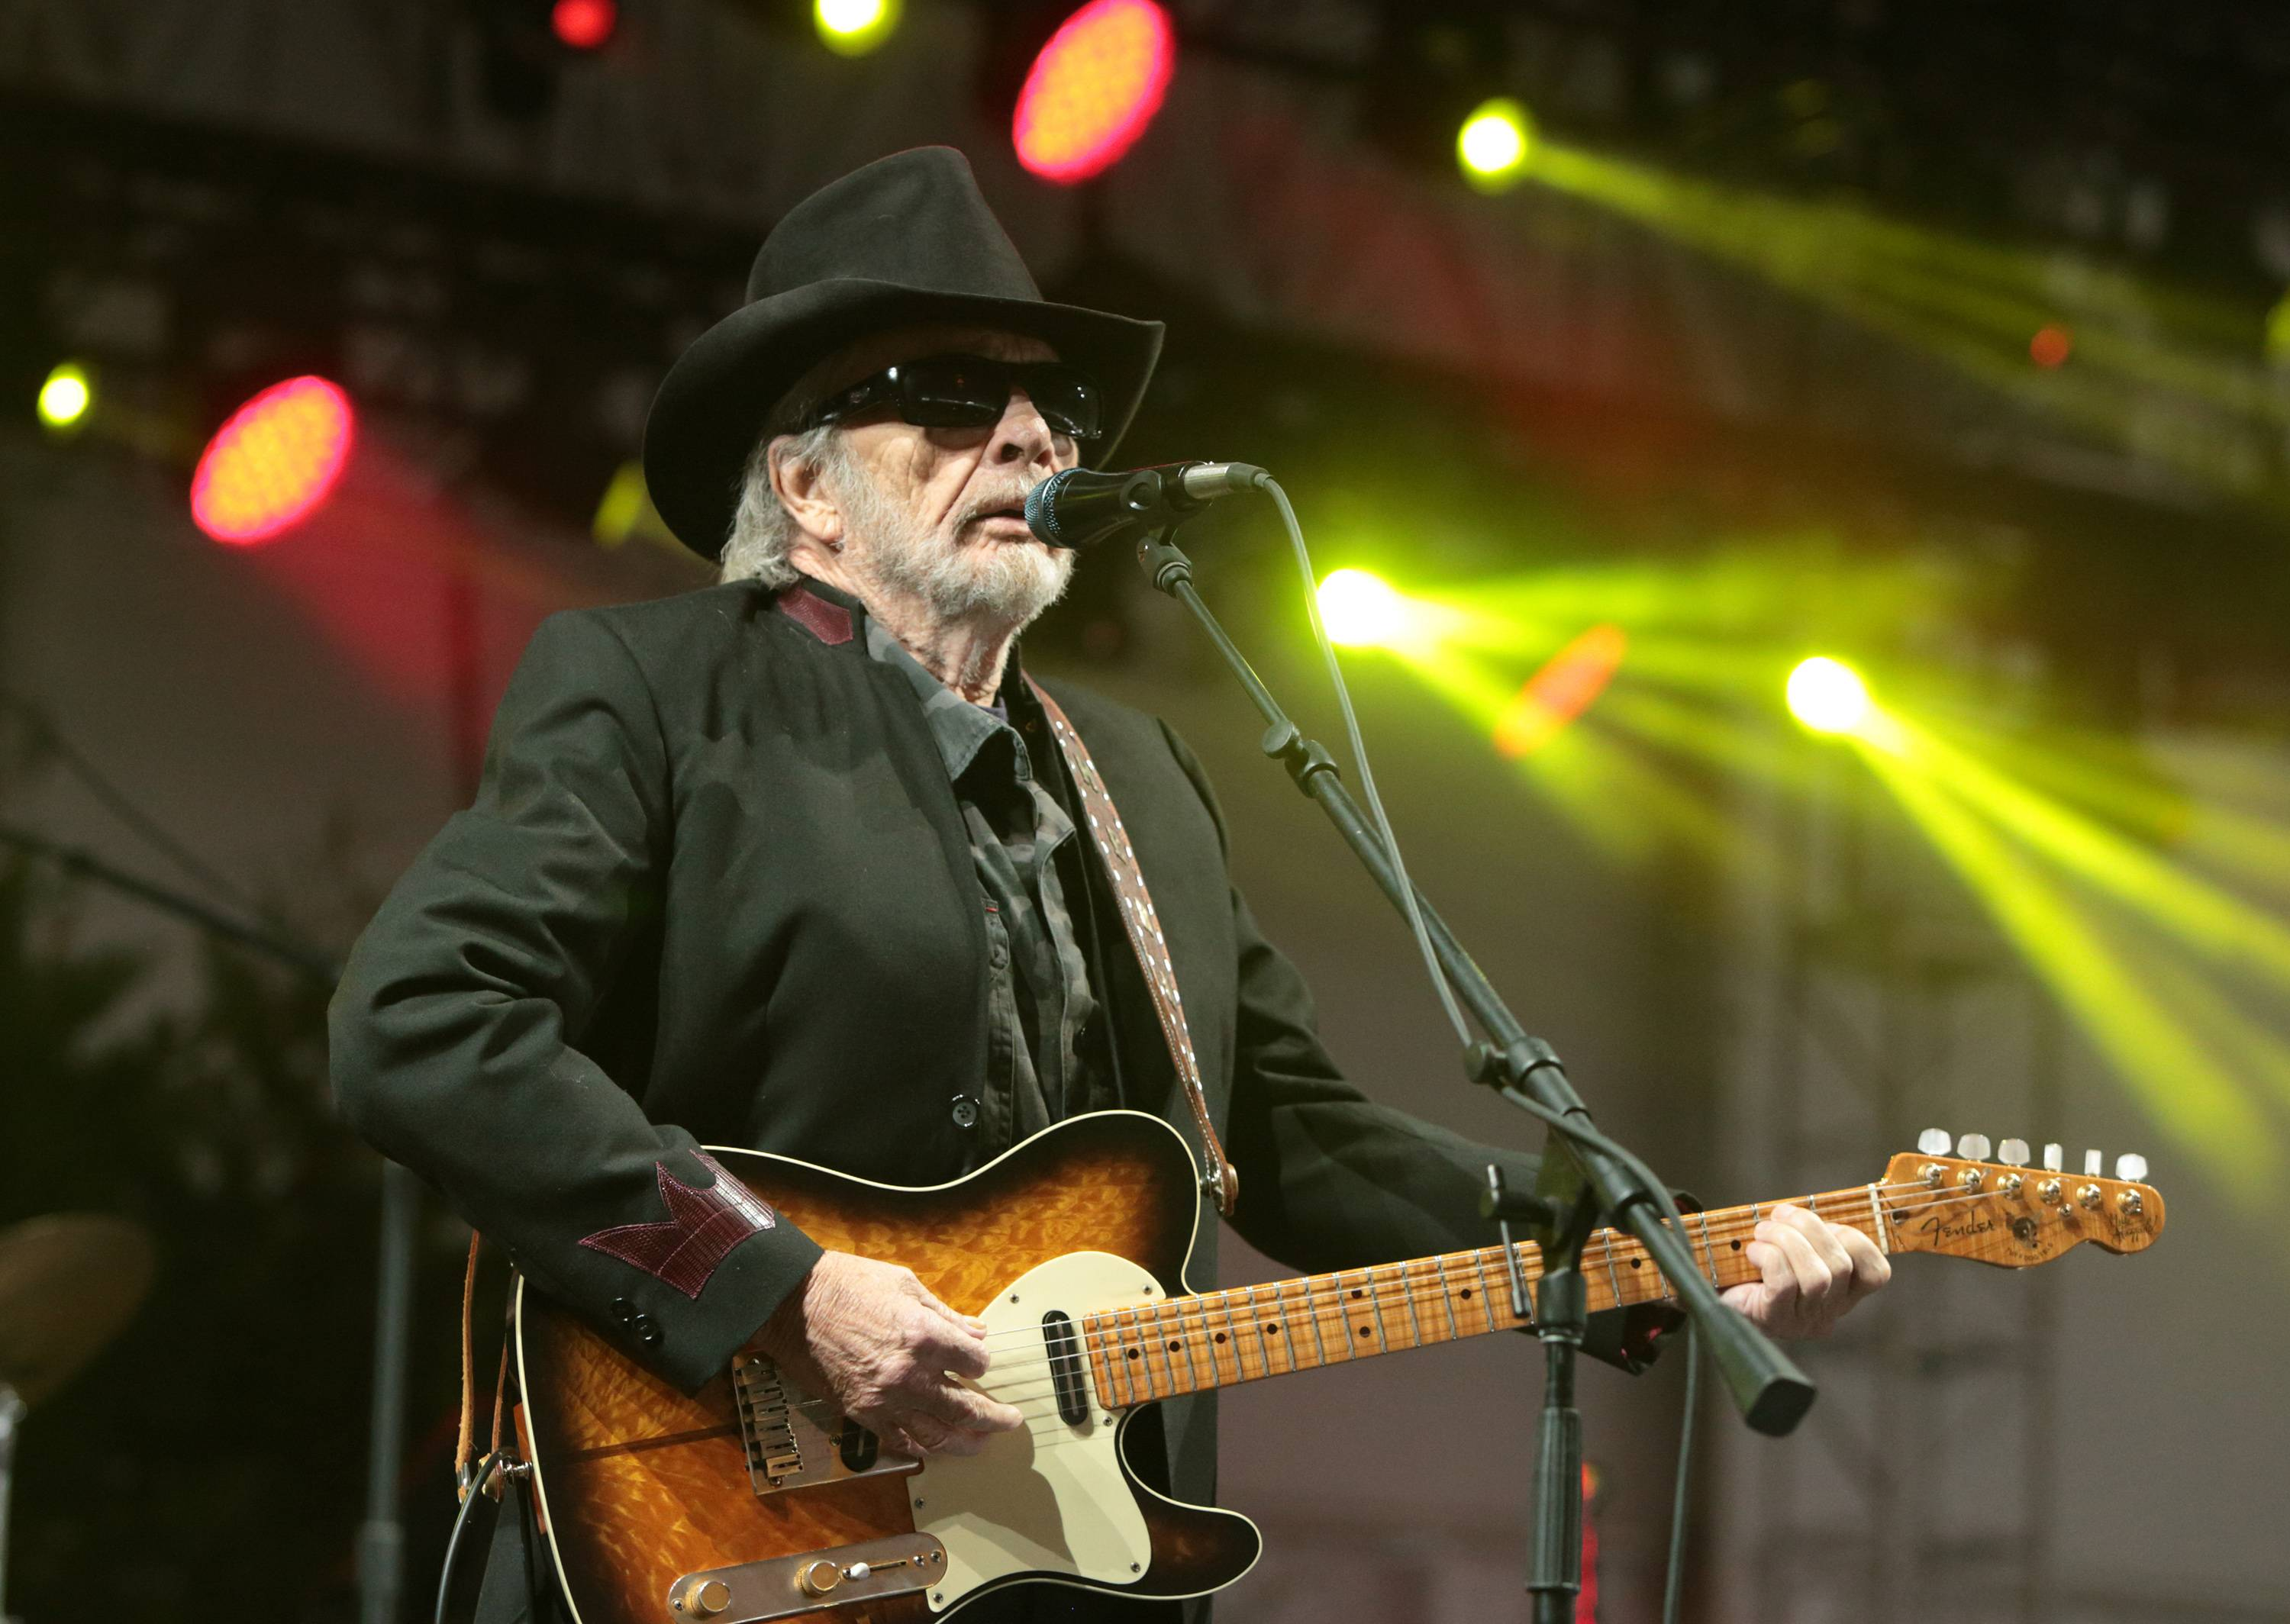 In this June 28, 2015 file photo, singer-songwriter Merle Haggard performs at the 2015 Big Barrel Country Music Festival in Dover, Del. Haggard died of pneumonia, Wednesday, April 6, 2016, in Palo Cedro, Calif. He was 79.